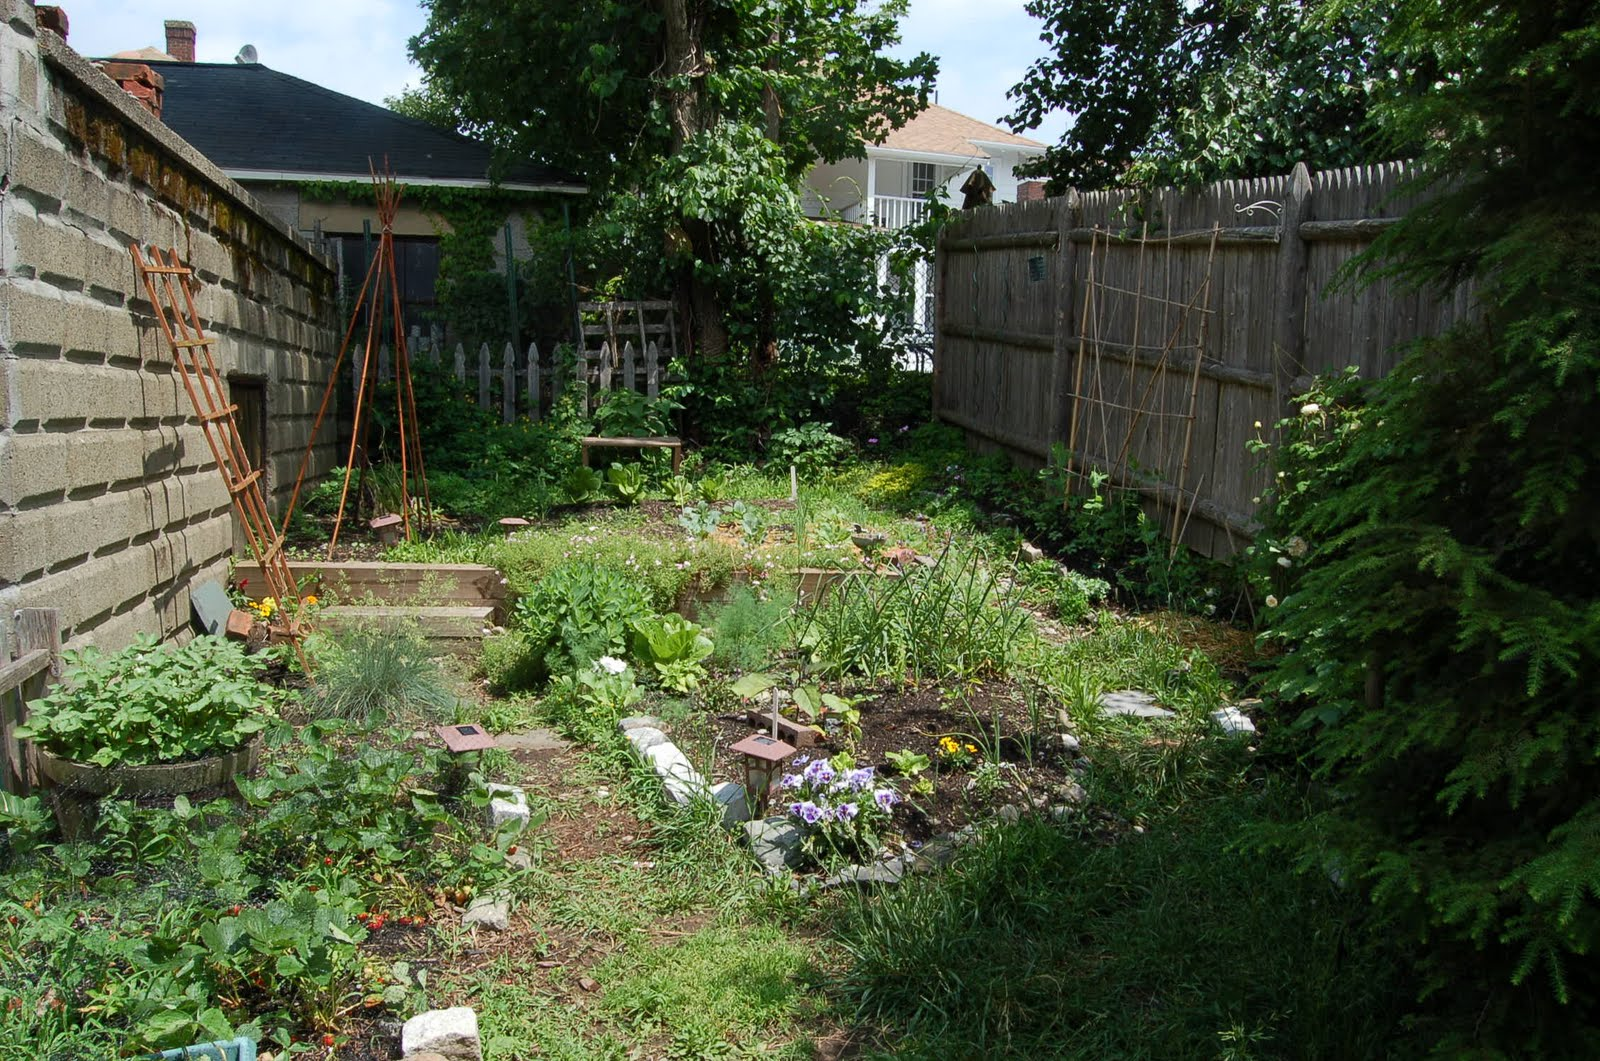 Boston Backyard Gardener: Permaculture and the backyard garden on Backyard Permaculture Design id=37947